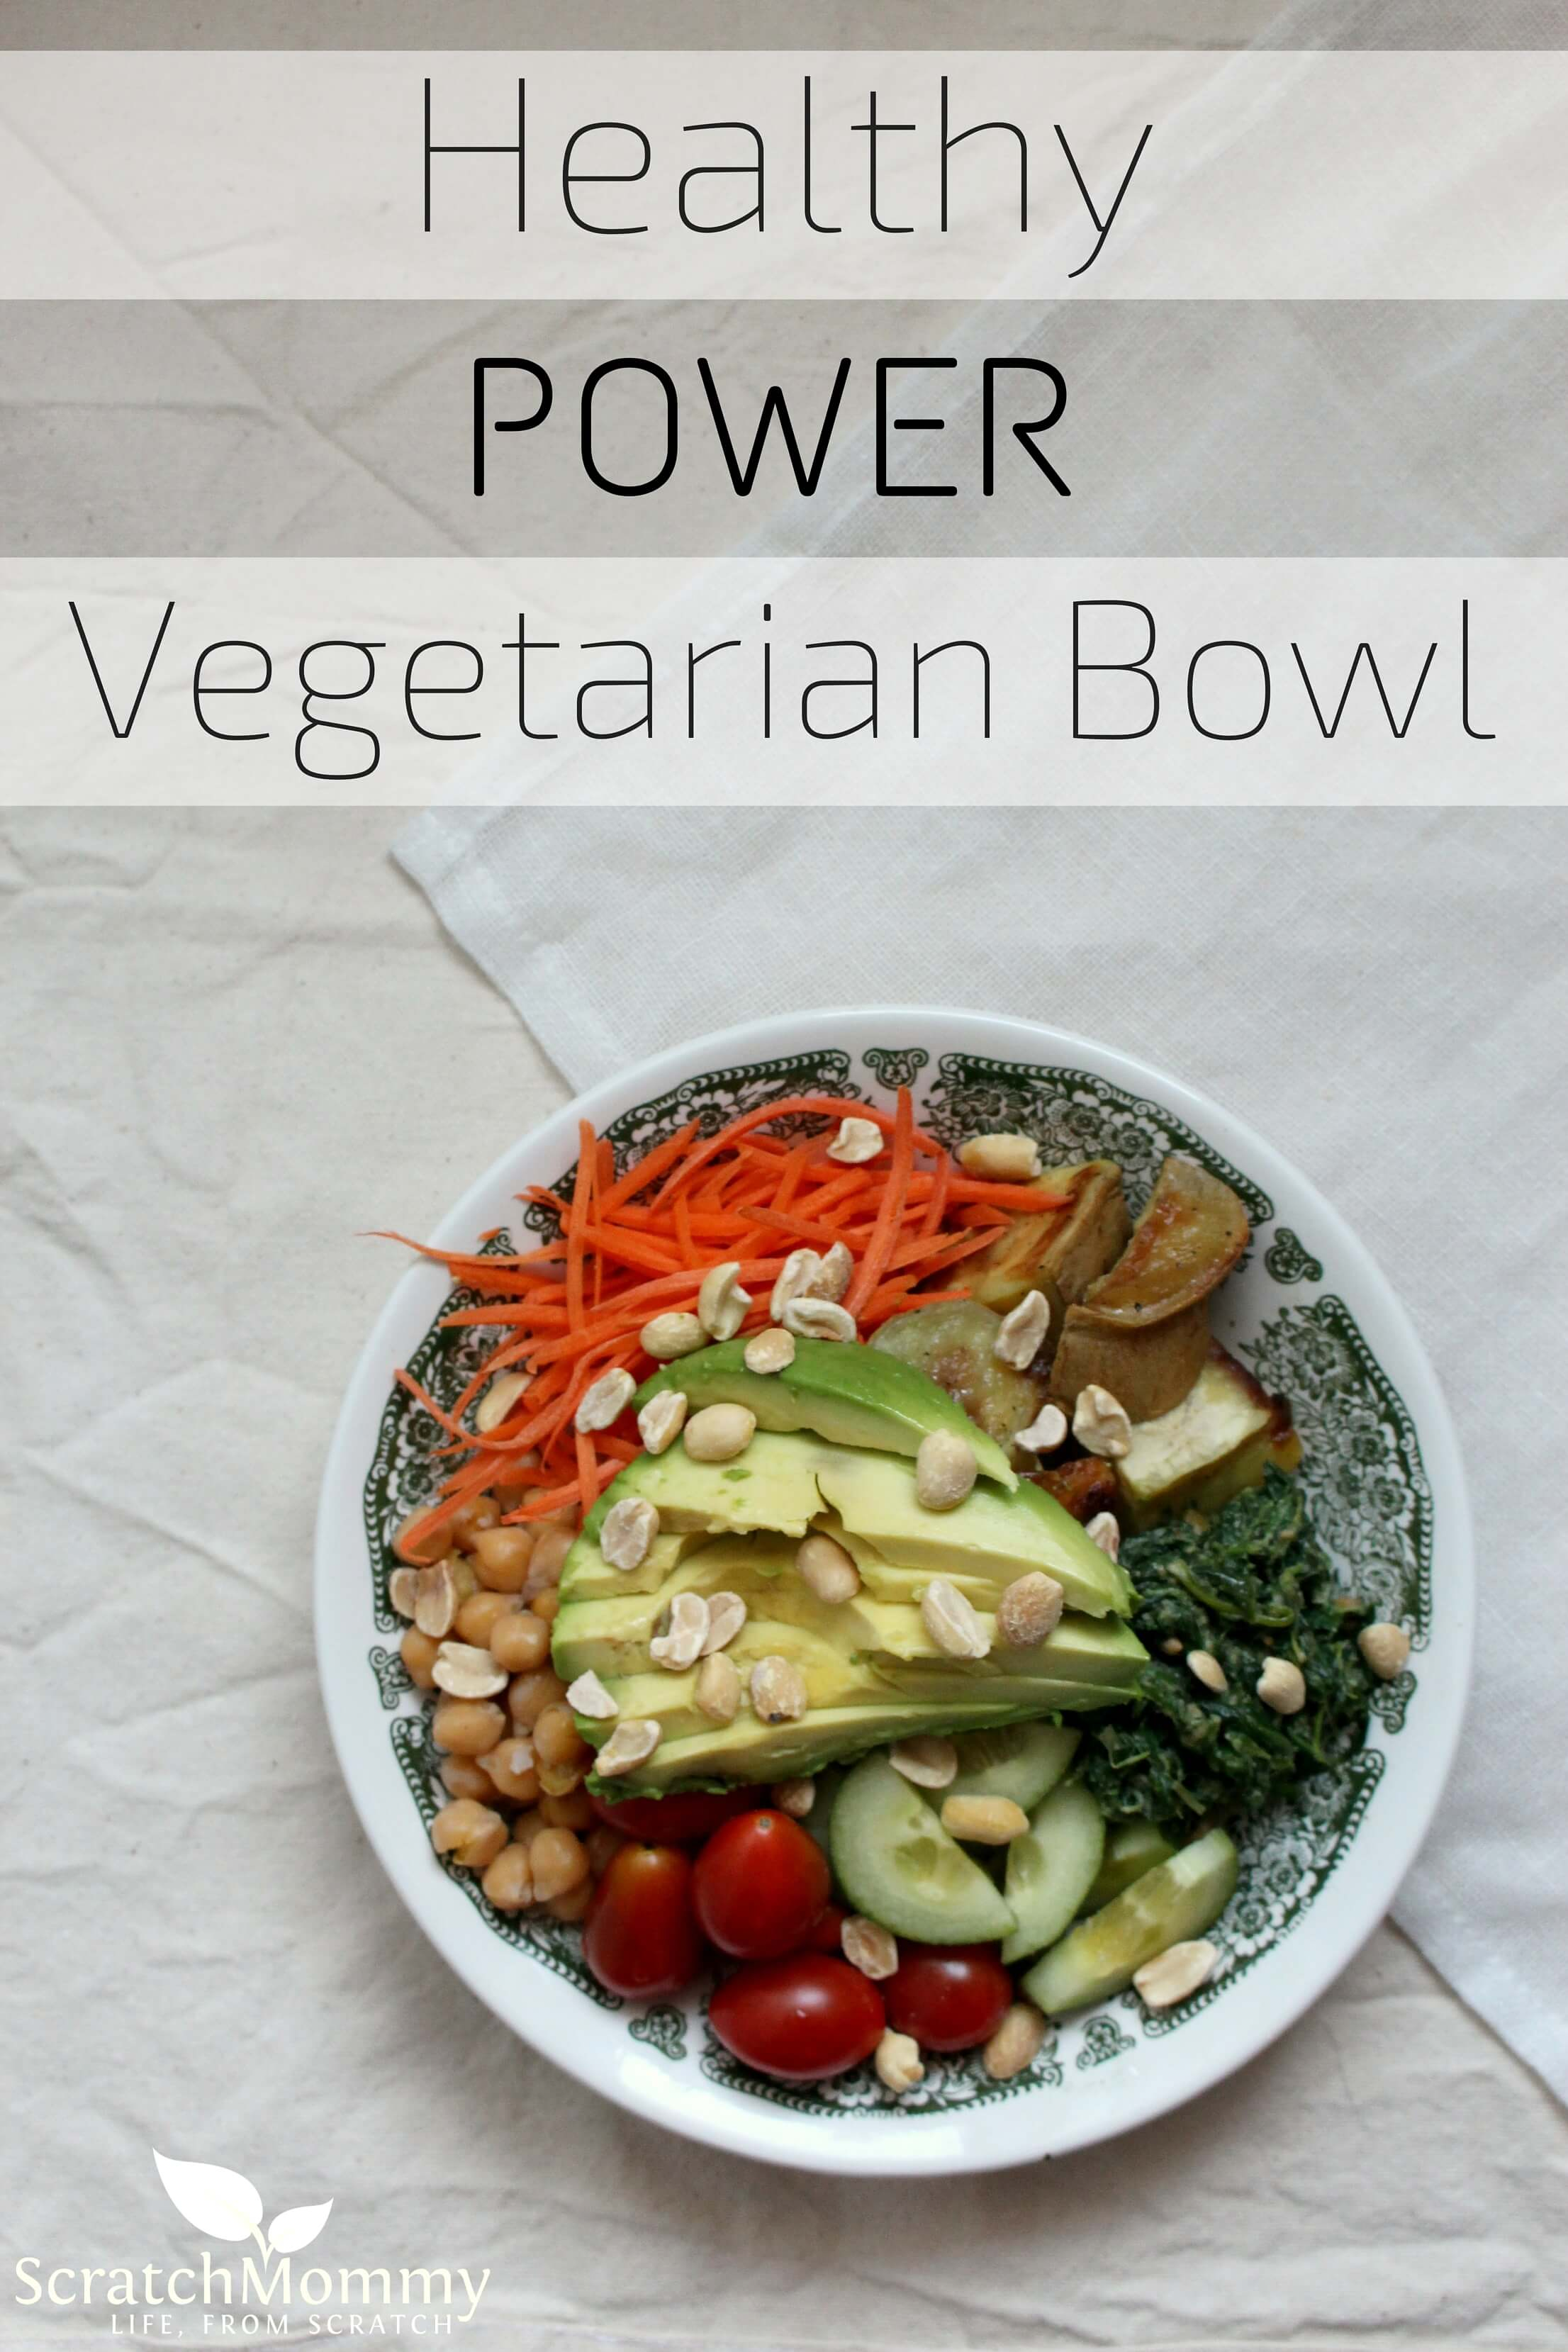 Healthy Power Vegetarian Bowl. Jam packed with healthy veggies and so fun (and easy!) to make- Scratch Mommy